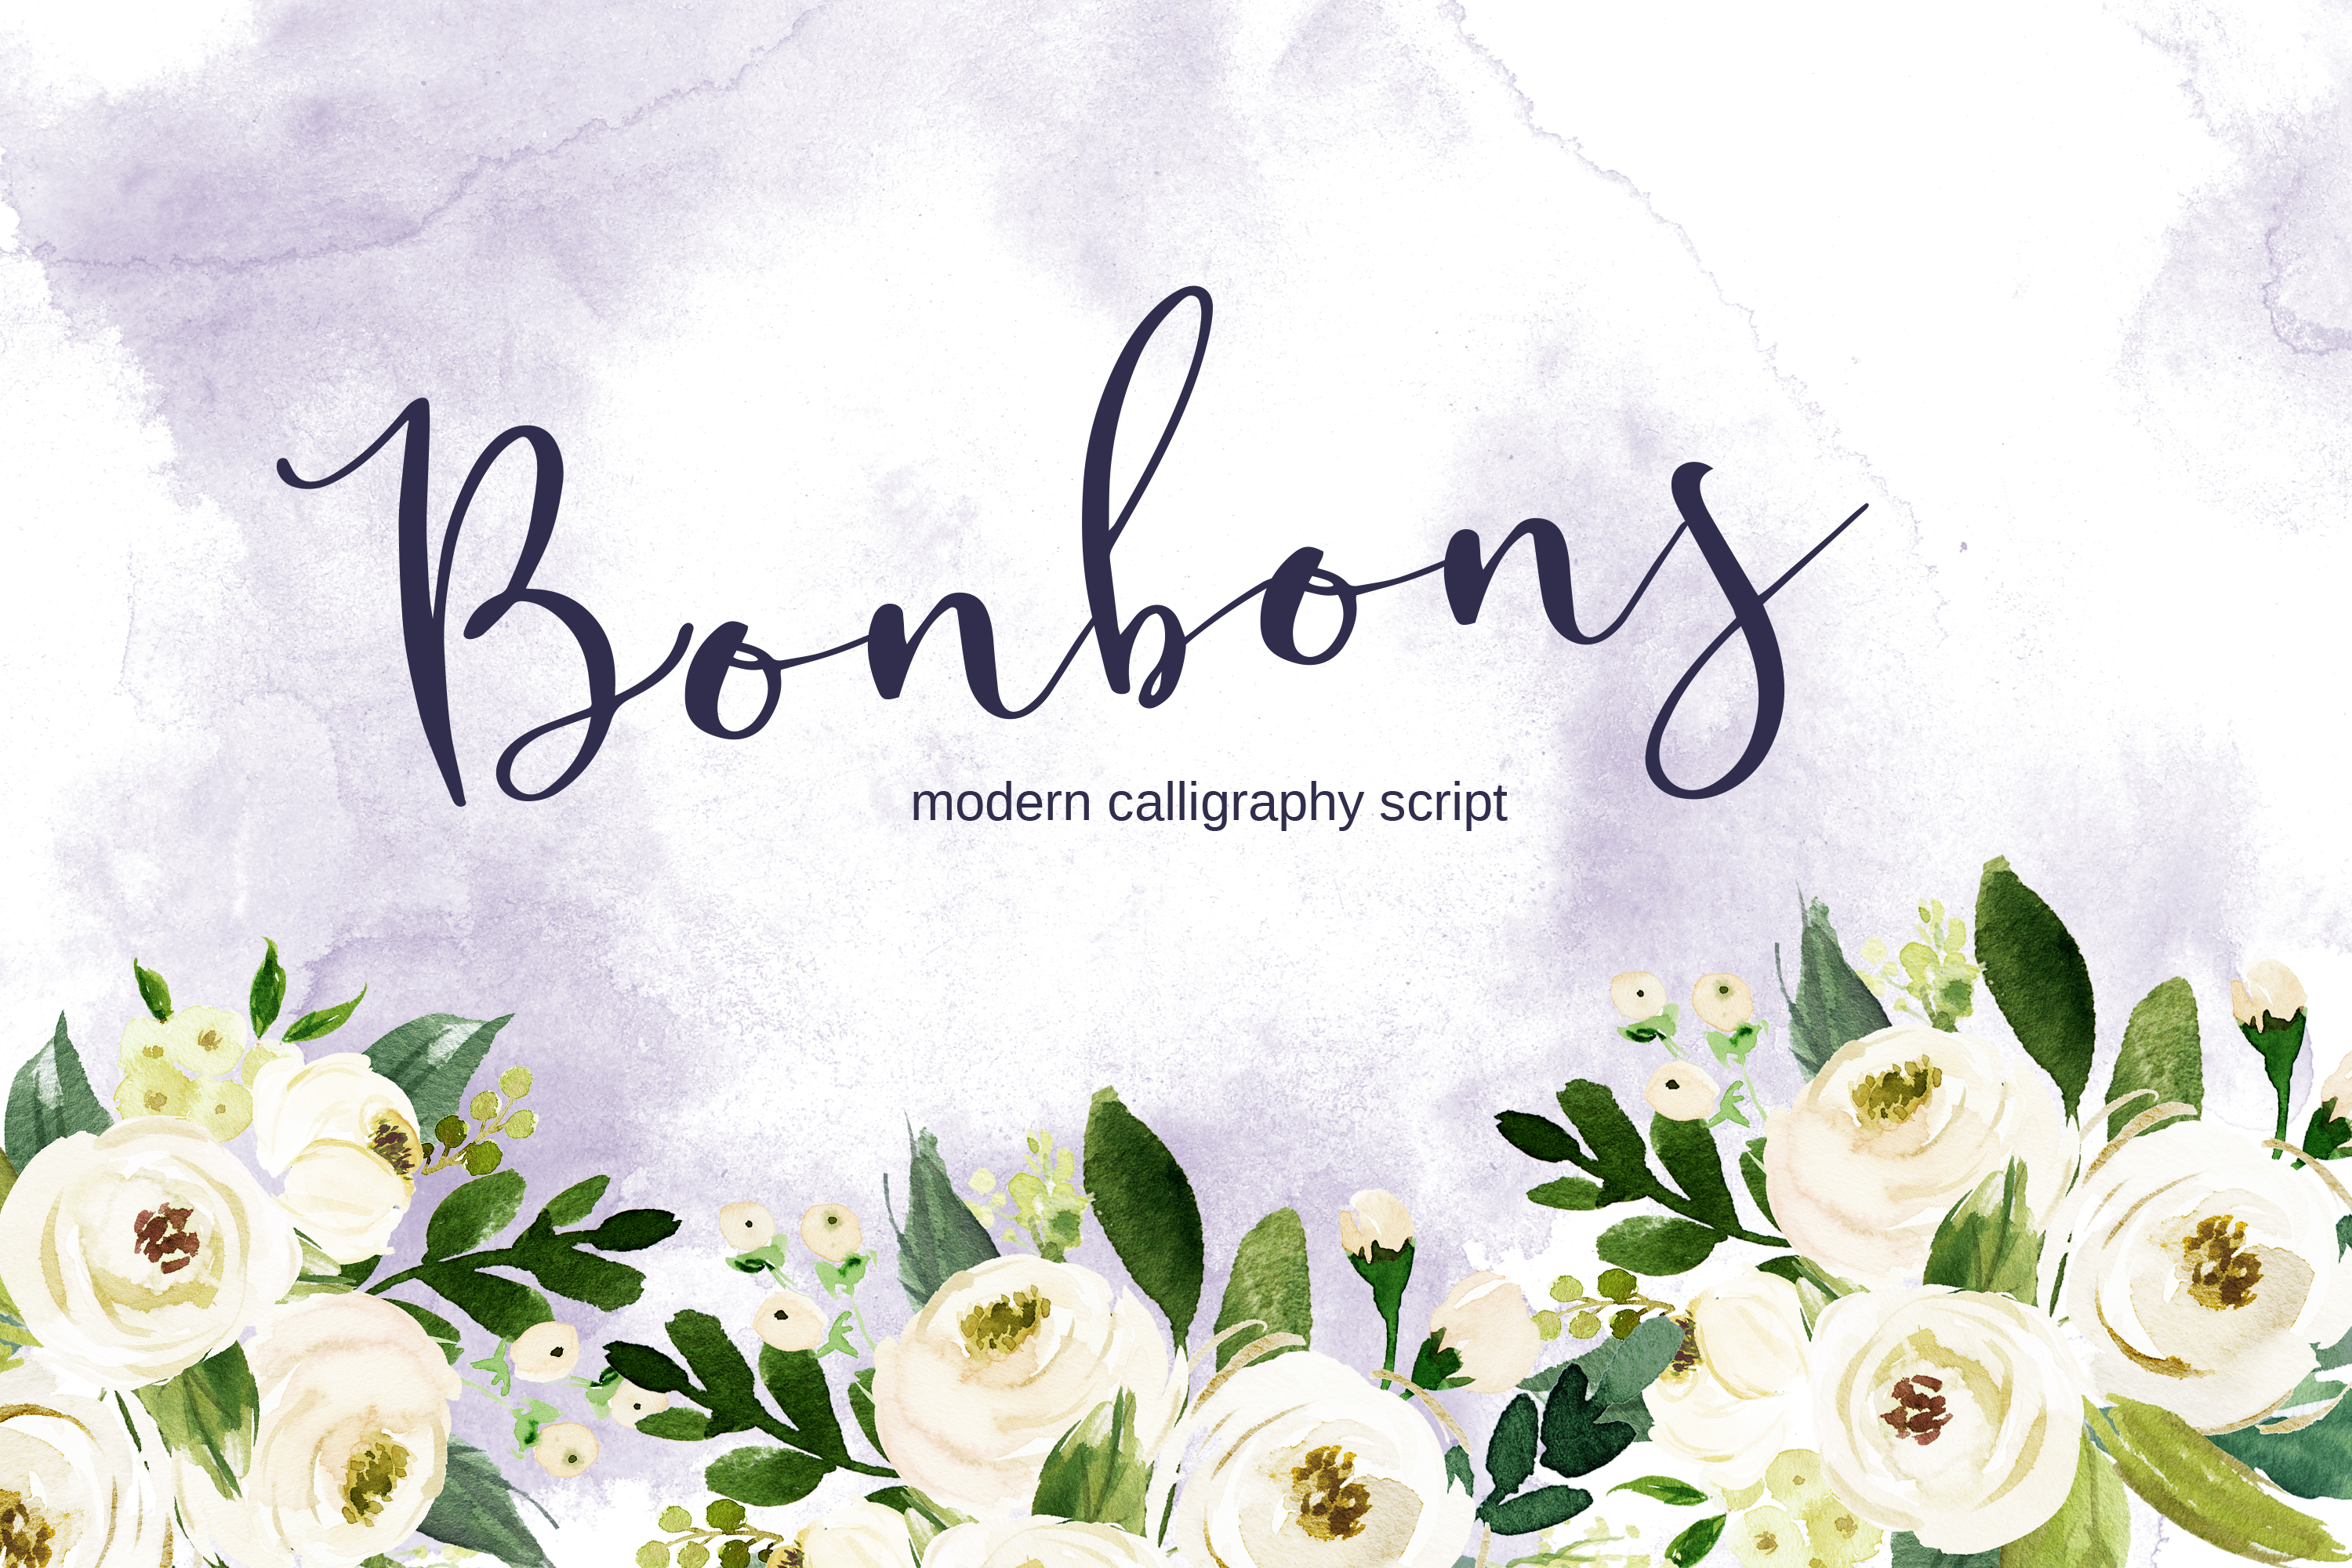 Bonbons - modern calligraphy script font with gold and silve example image 1